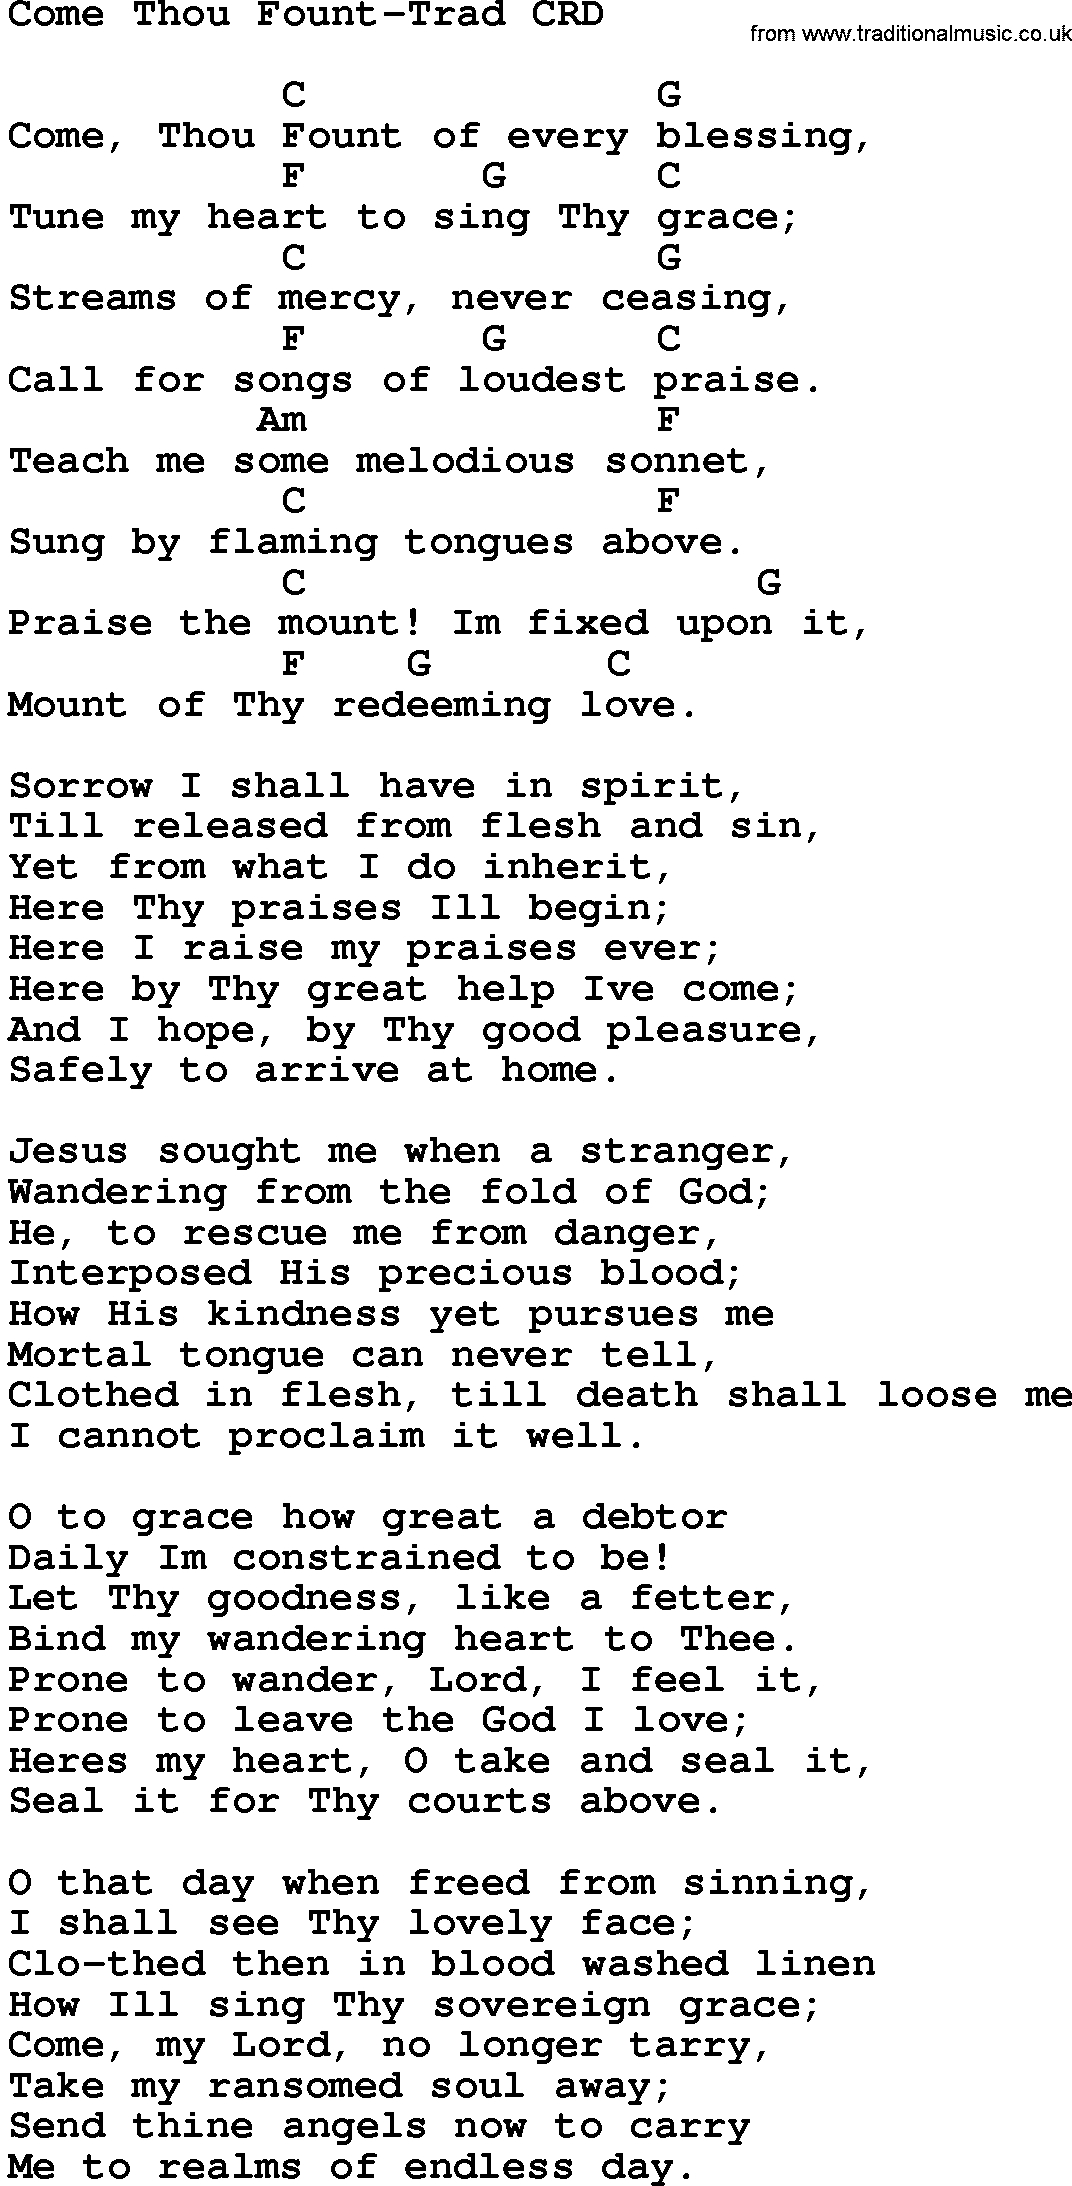 Come Thou Fount Chords Gospel Song Come Thou Fount Trad Lyrics And Chords